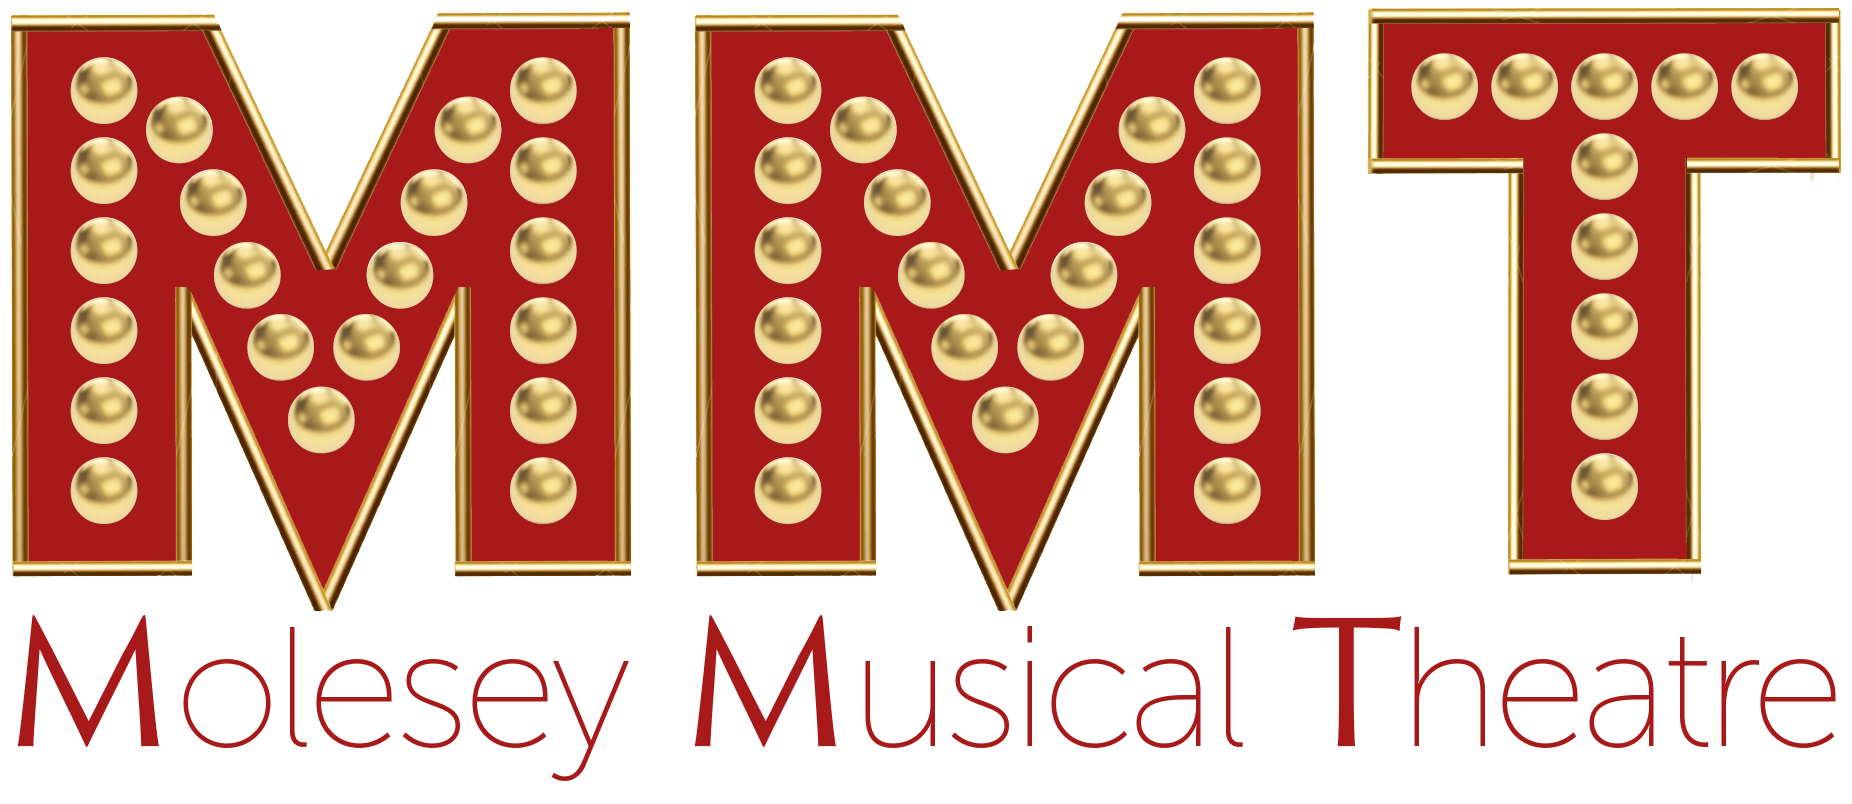 Molesey Musical Theatre